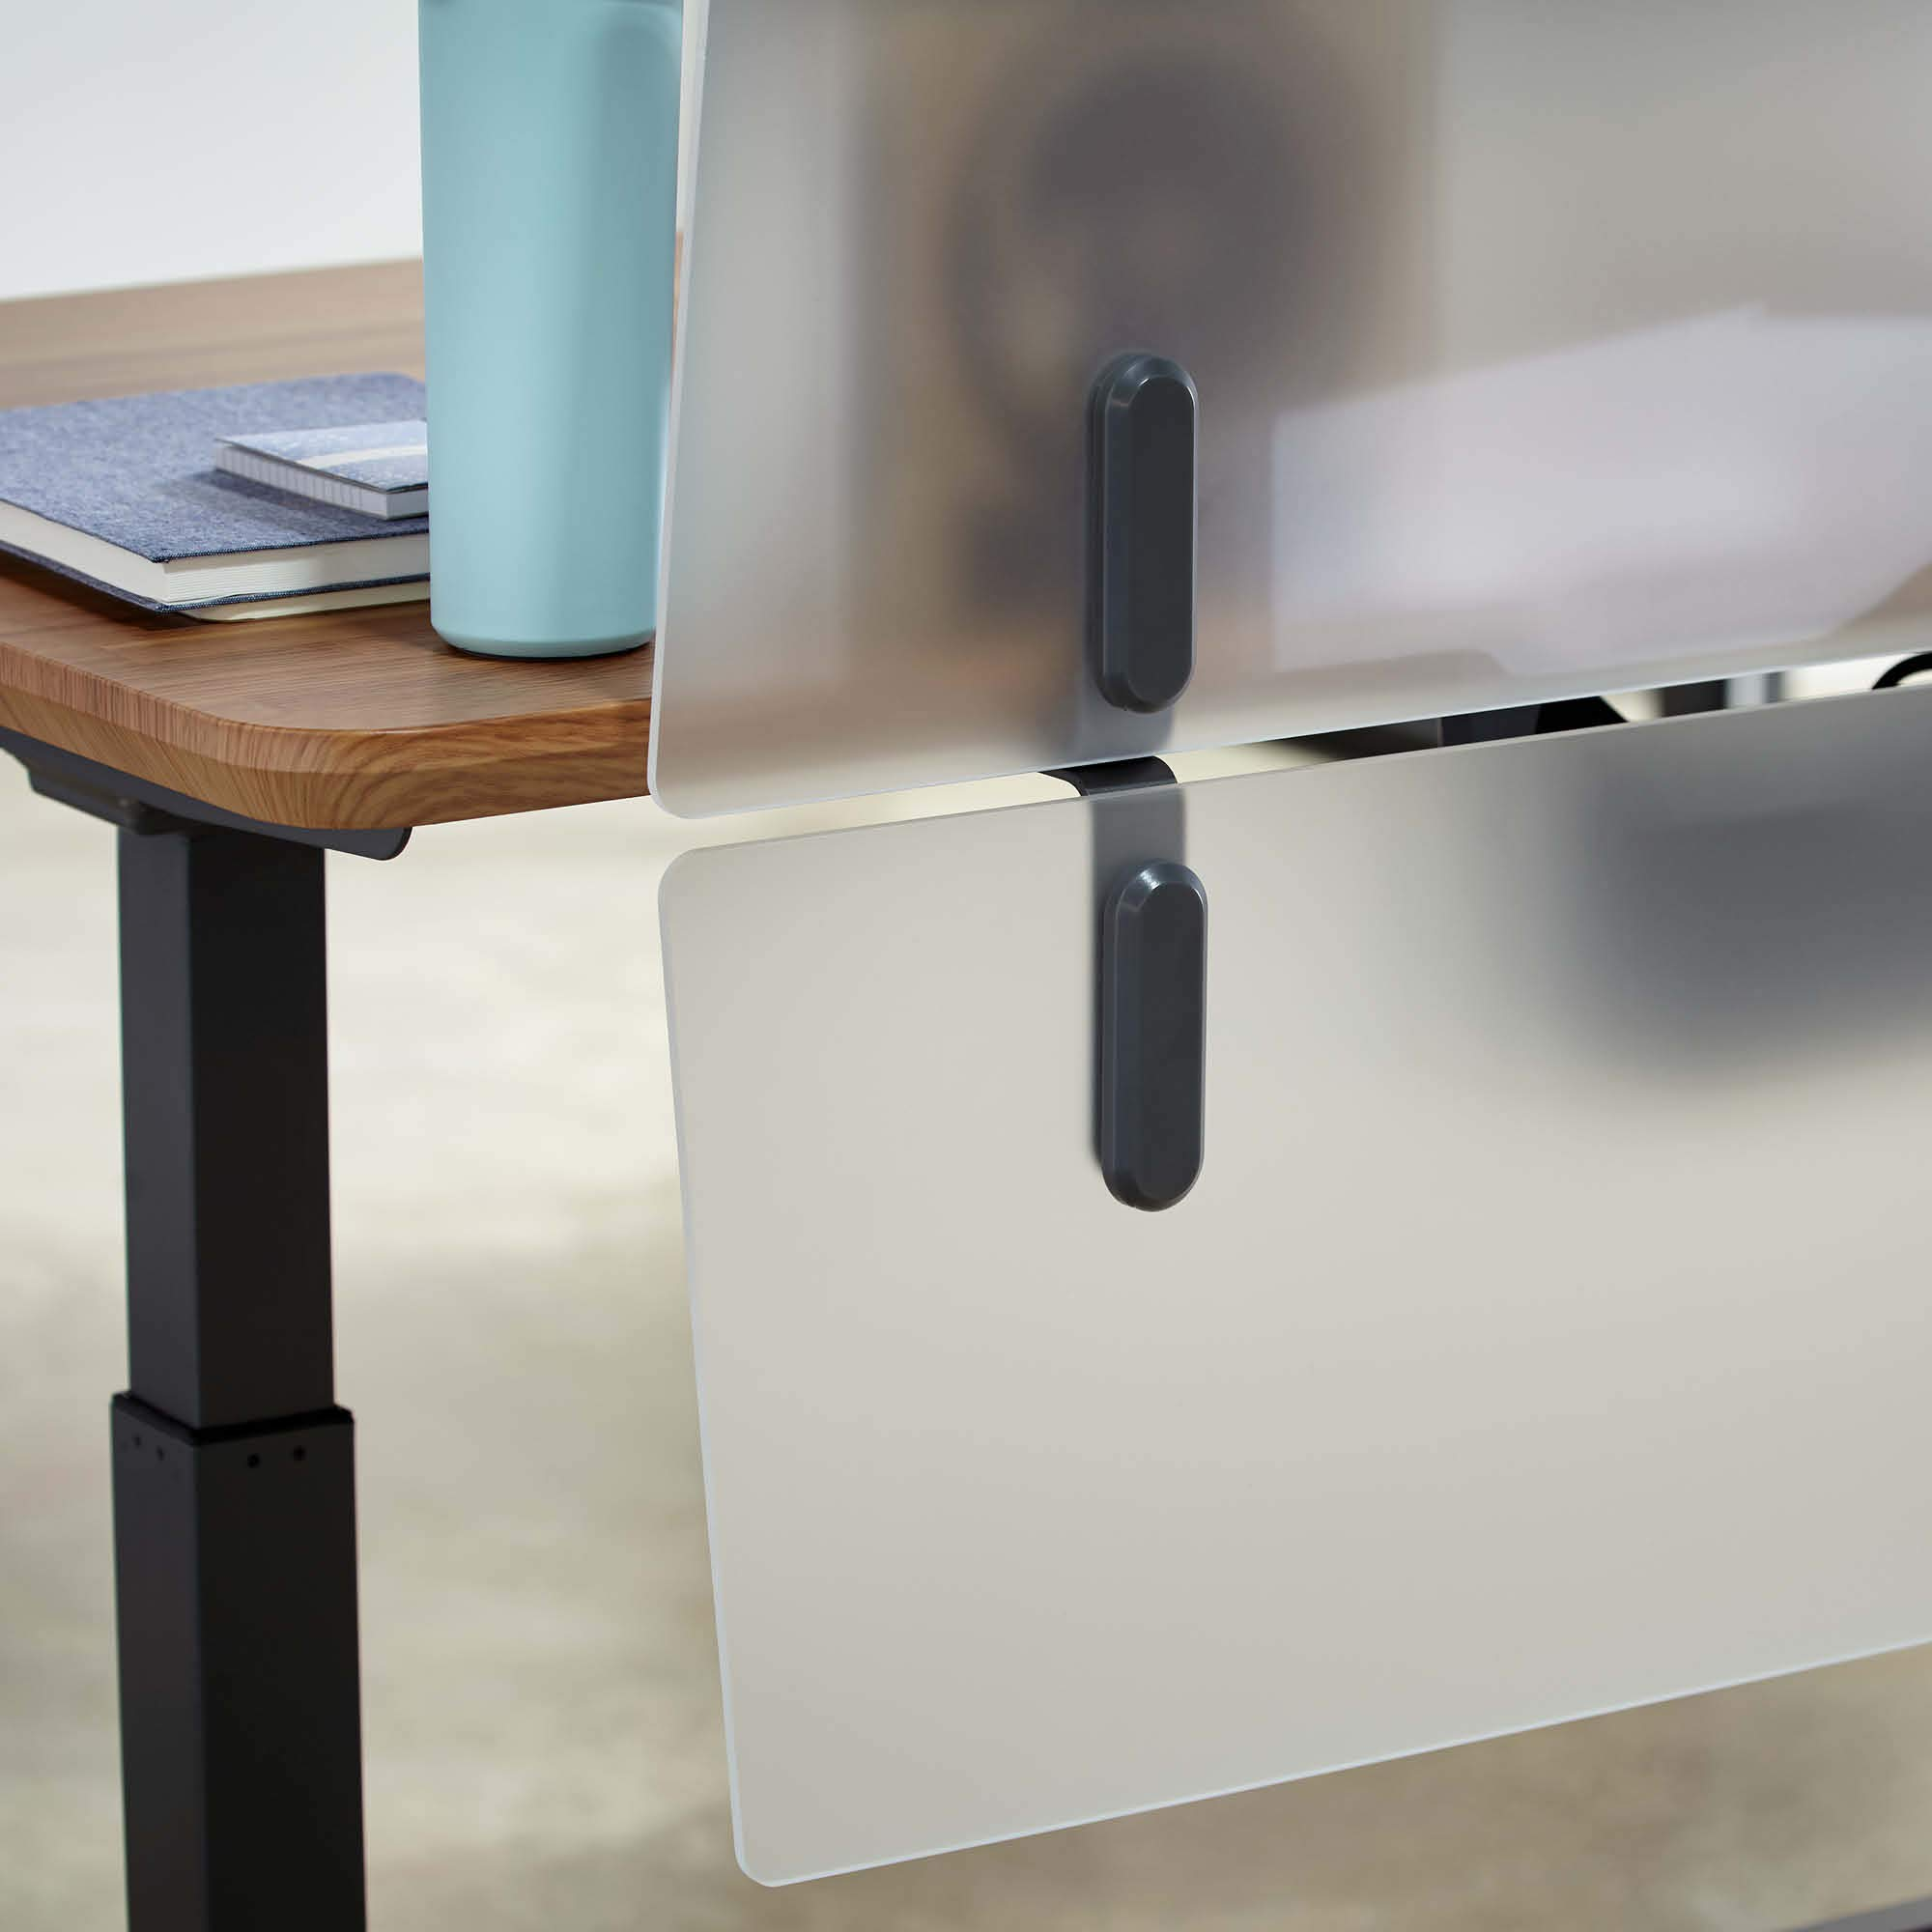 VARIDESK - ProDesk Electric Privacy and Modesty Panel 60 - Office Partition by VARIDESK (Image #3)